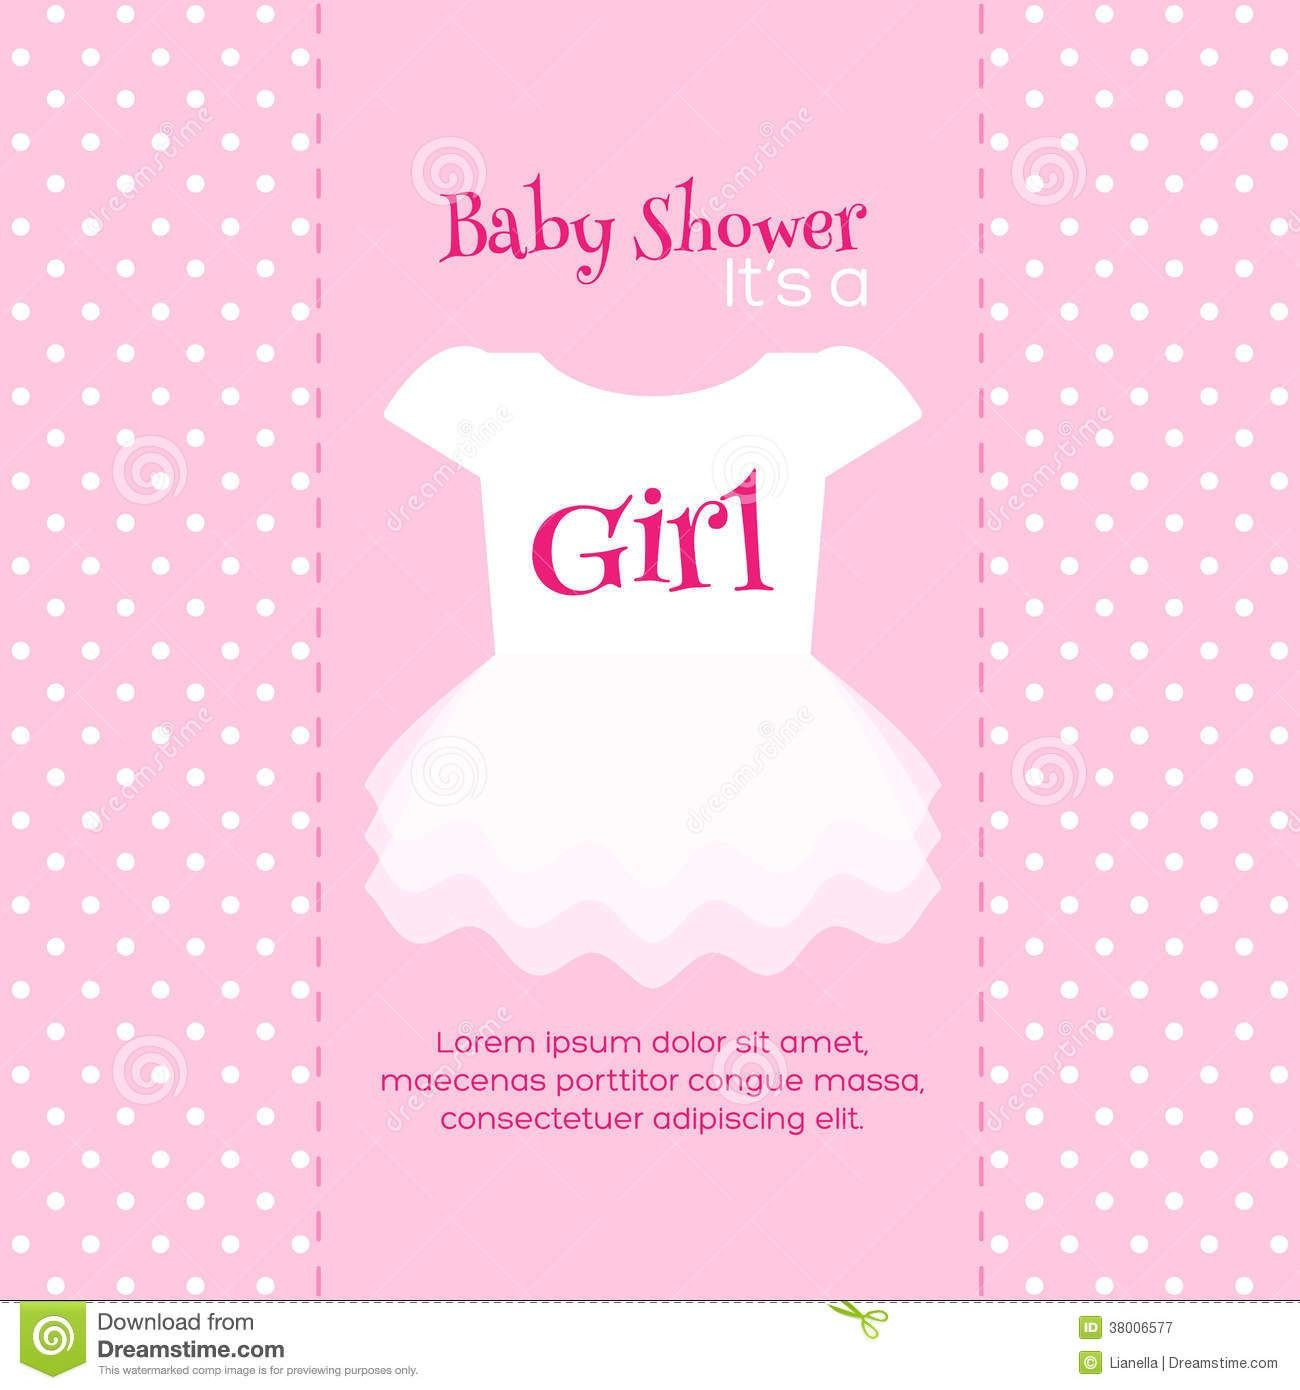 Baby Shower Card Template Design Free Printable Baby Shower Invitations for Girls